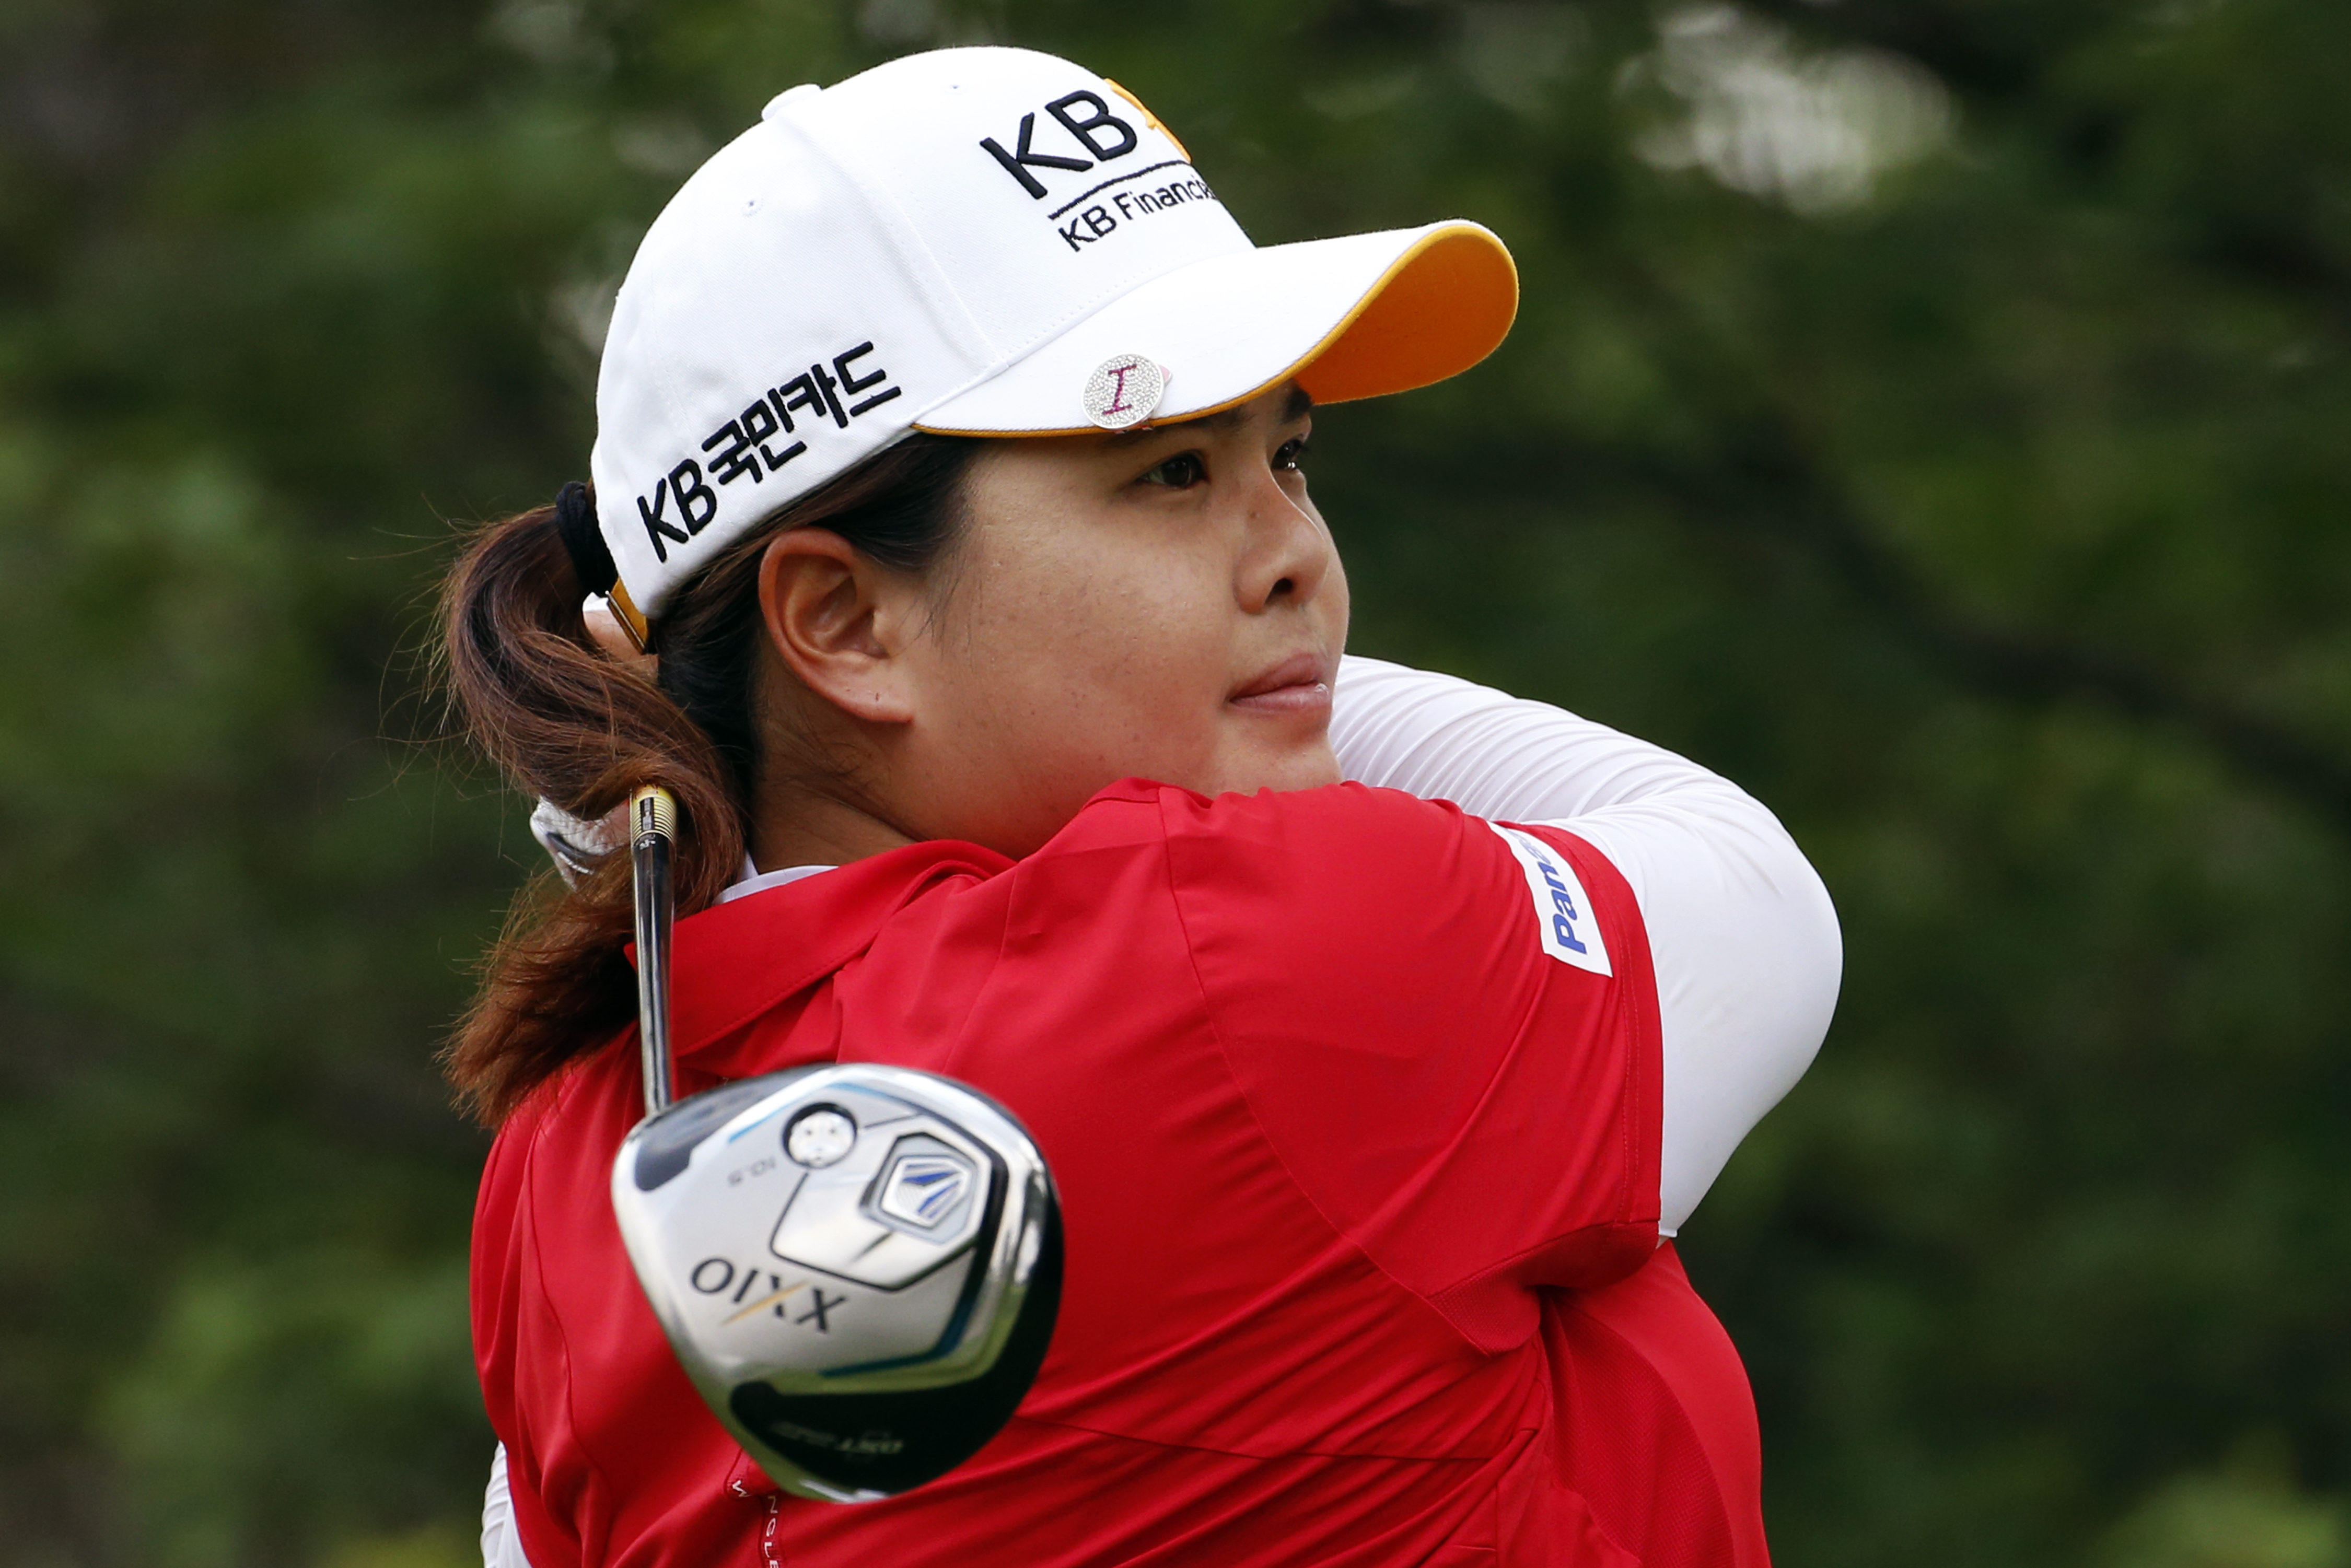 Inbee Park of South Korea hits her drive on the ninth tee during a practice round for the U.S. Women's Open at Lancaster Country Club in Lancaster, Pa., Tuesday, July 7, 2015.